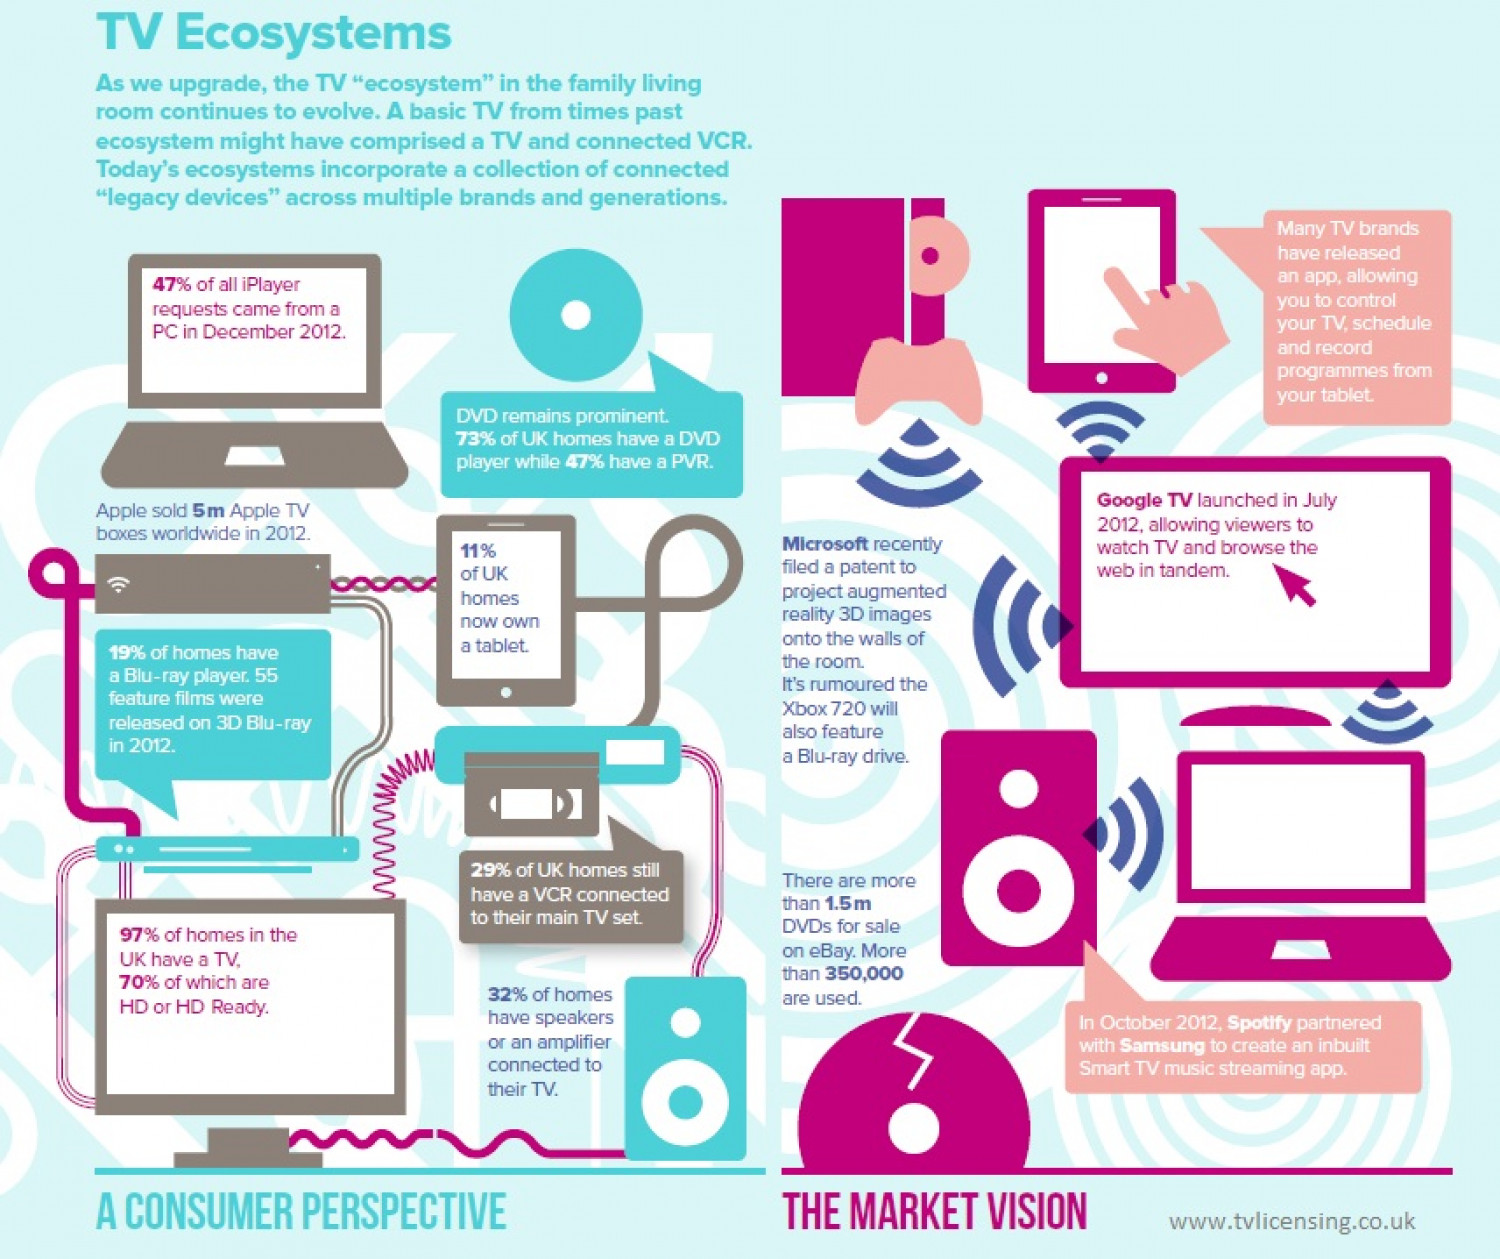 The TV Ecosystem Infographic